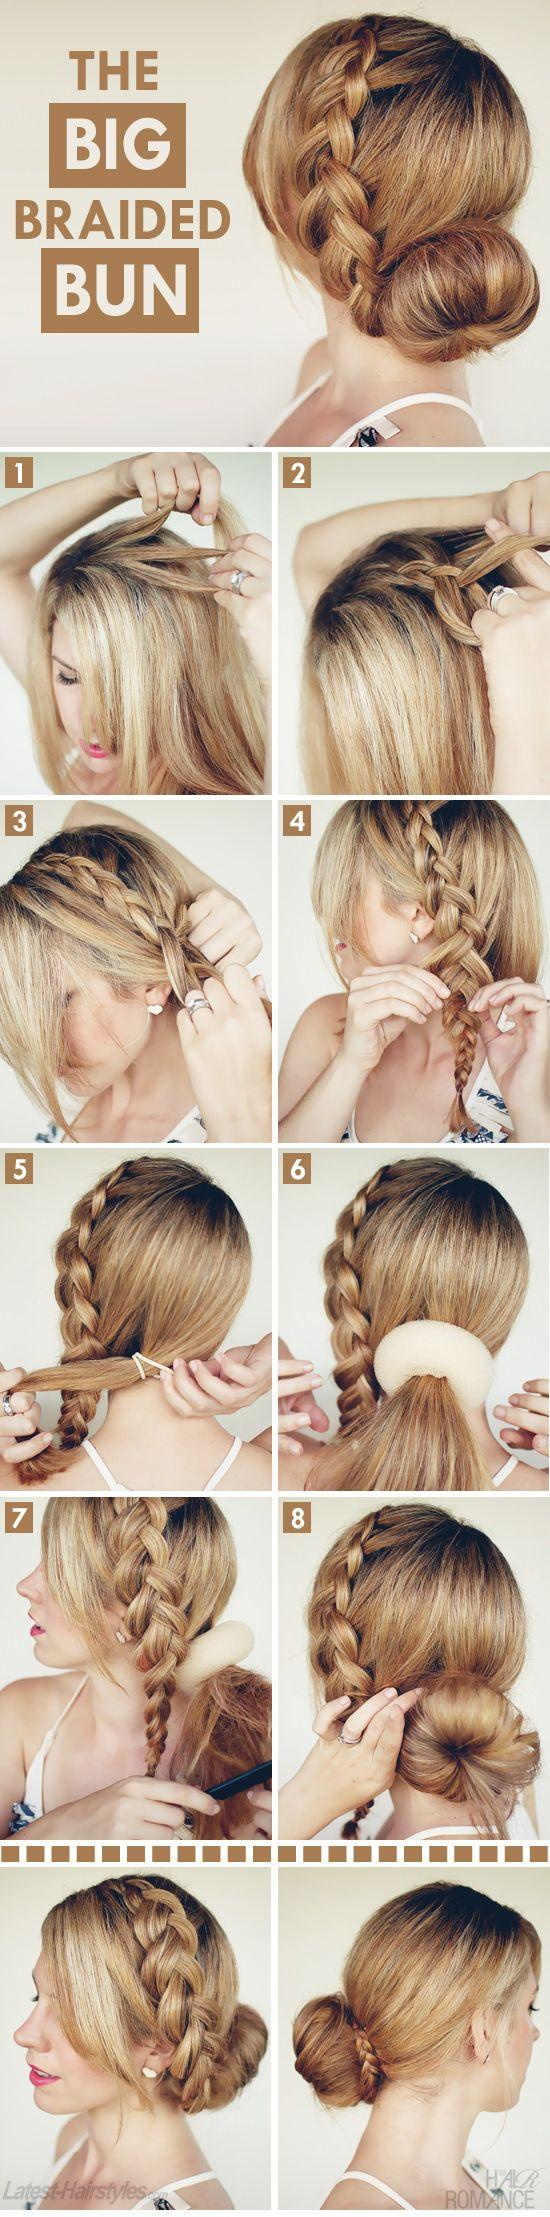 Hochzeit - 24 Statement Hairstyles For Your New Year's Eve Party